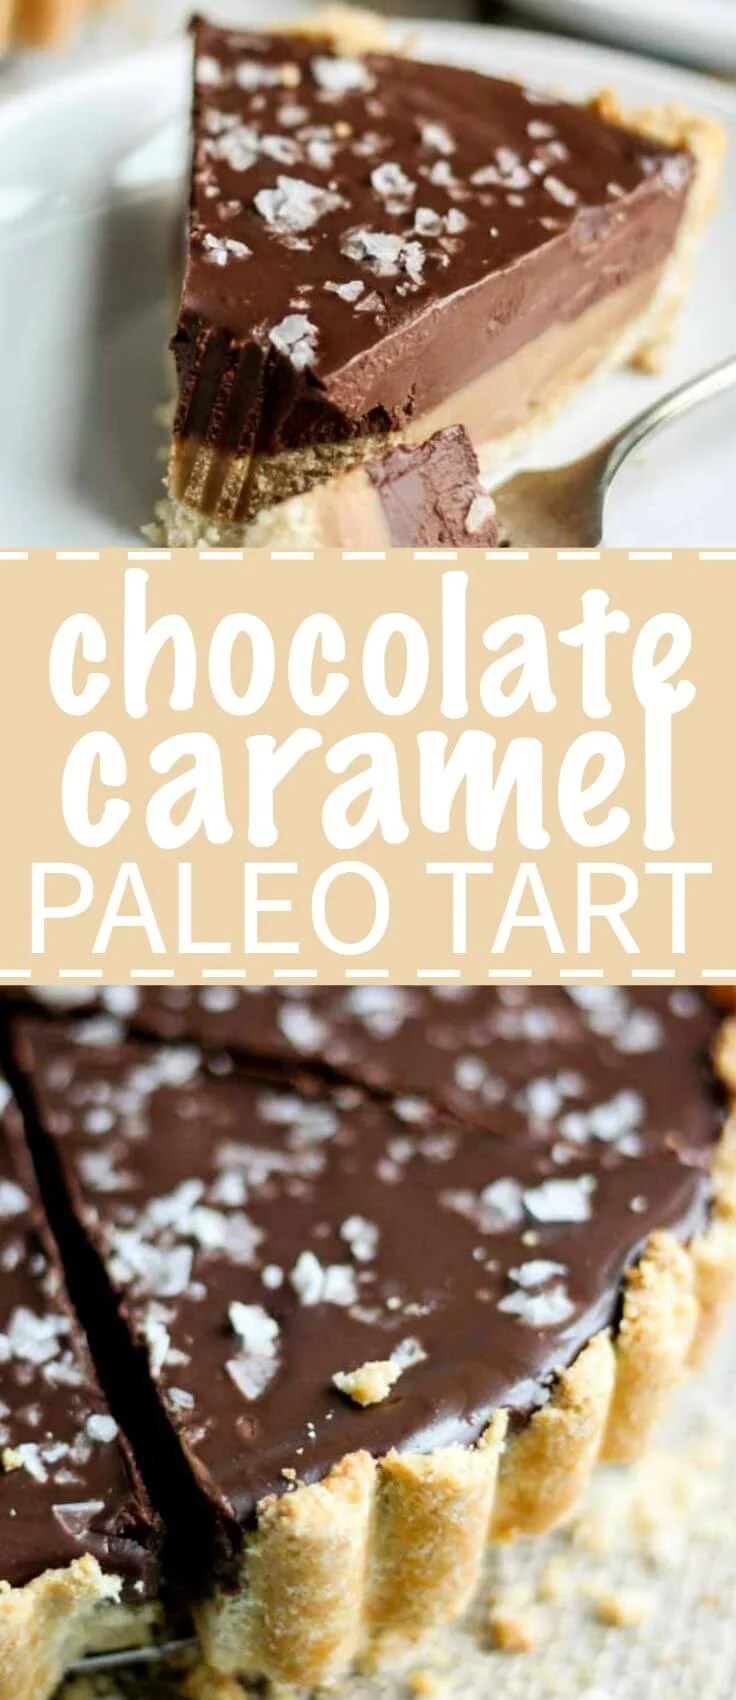 This chocolate caramel tart is paleo, gluten-free and vegan. Aka no refined sugar, no grains no unhealthy fats and yet, it has all the flavor and them some.